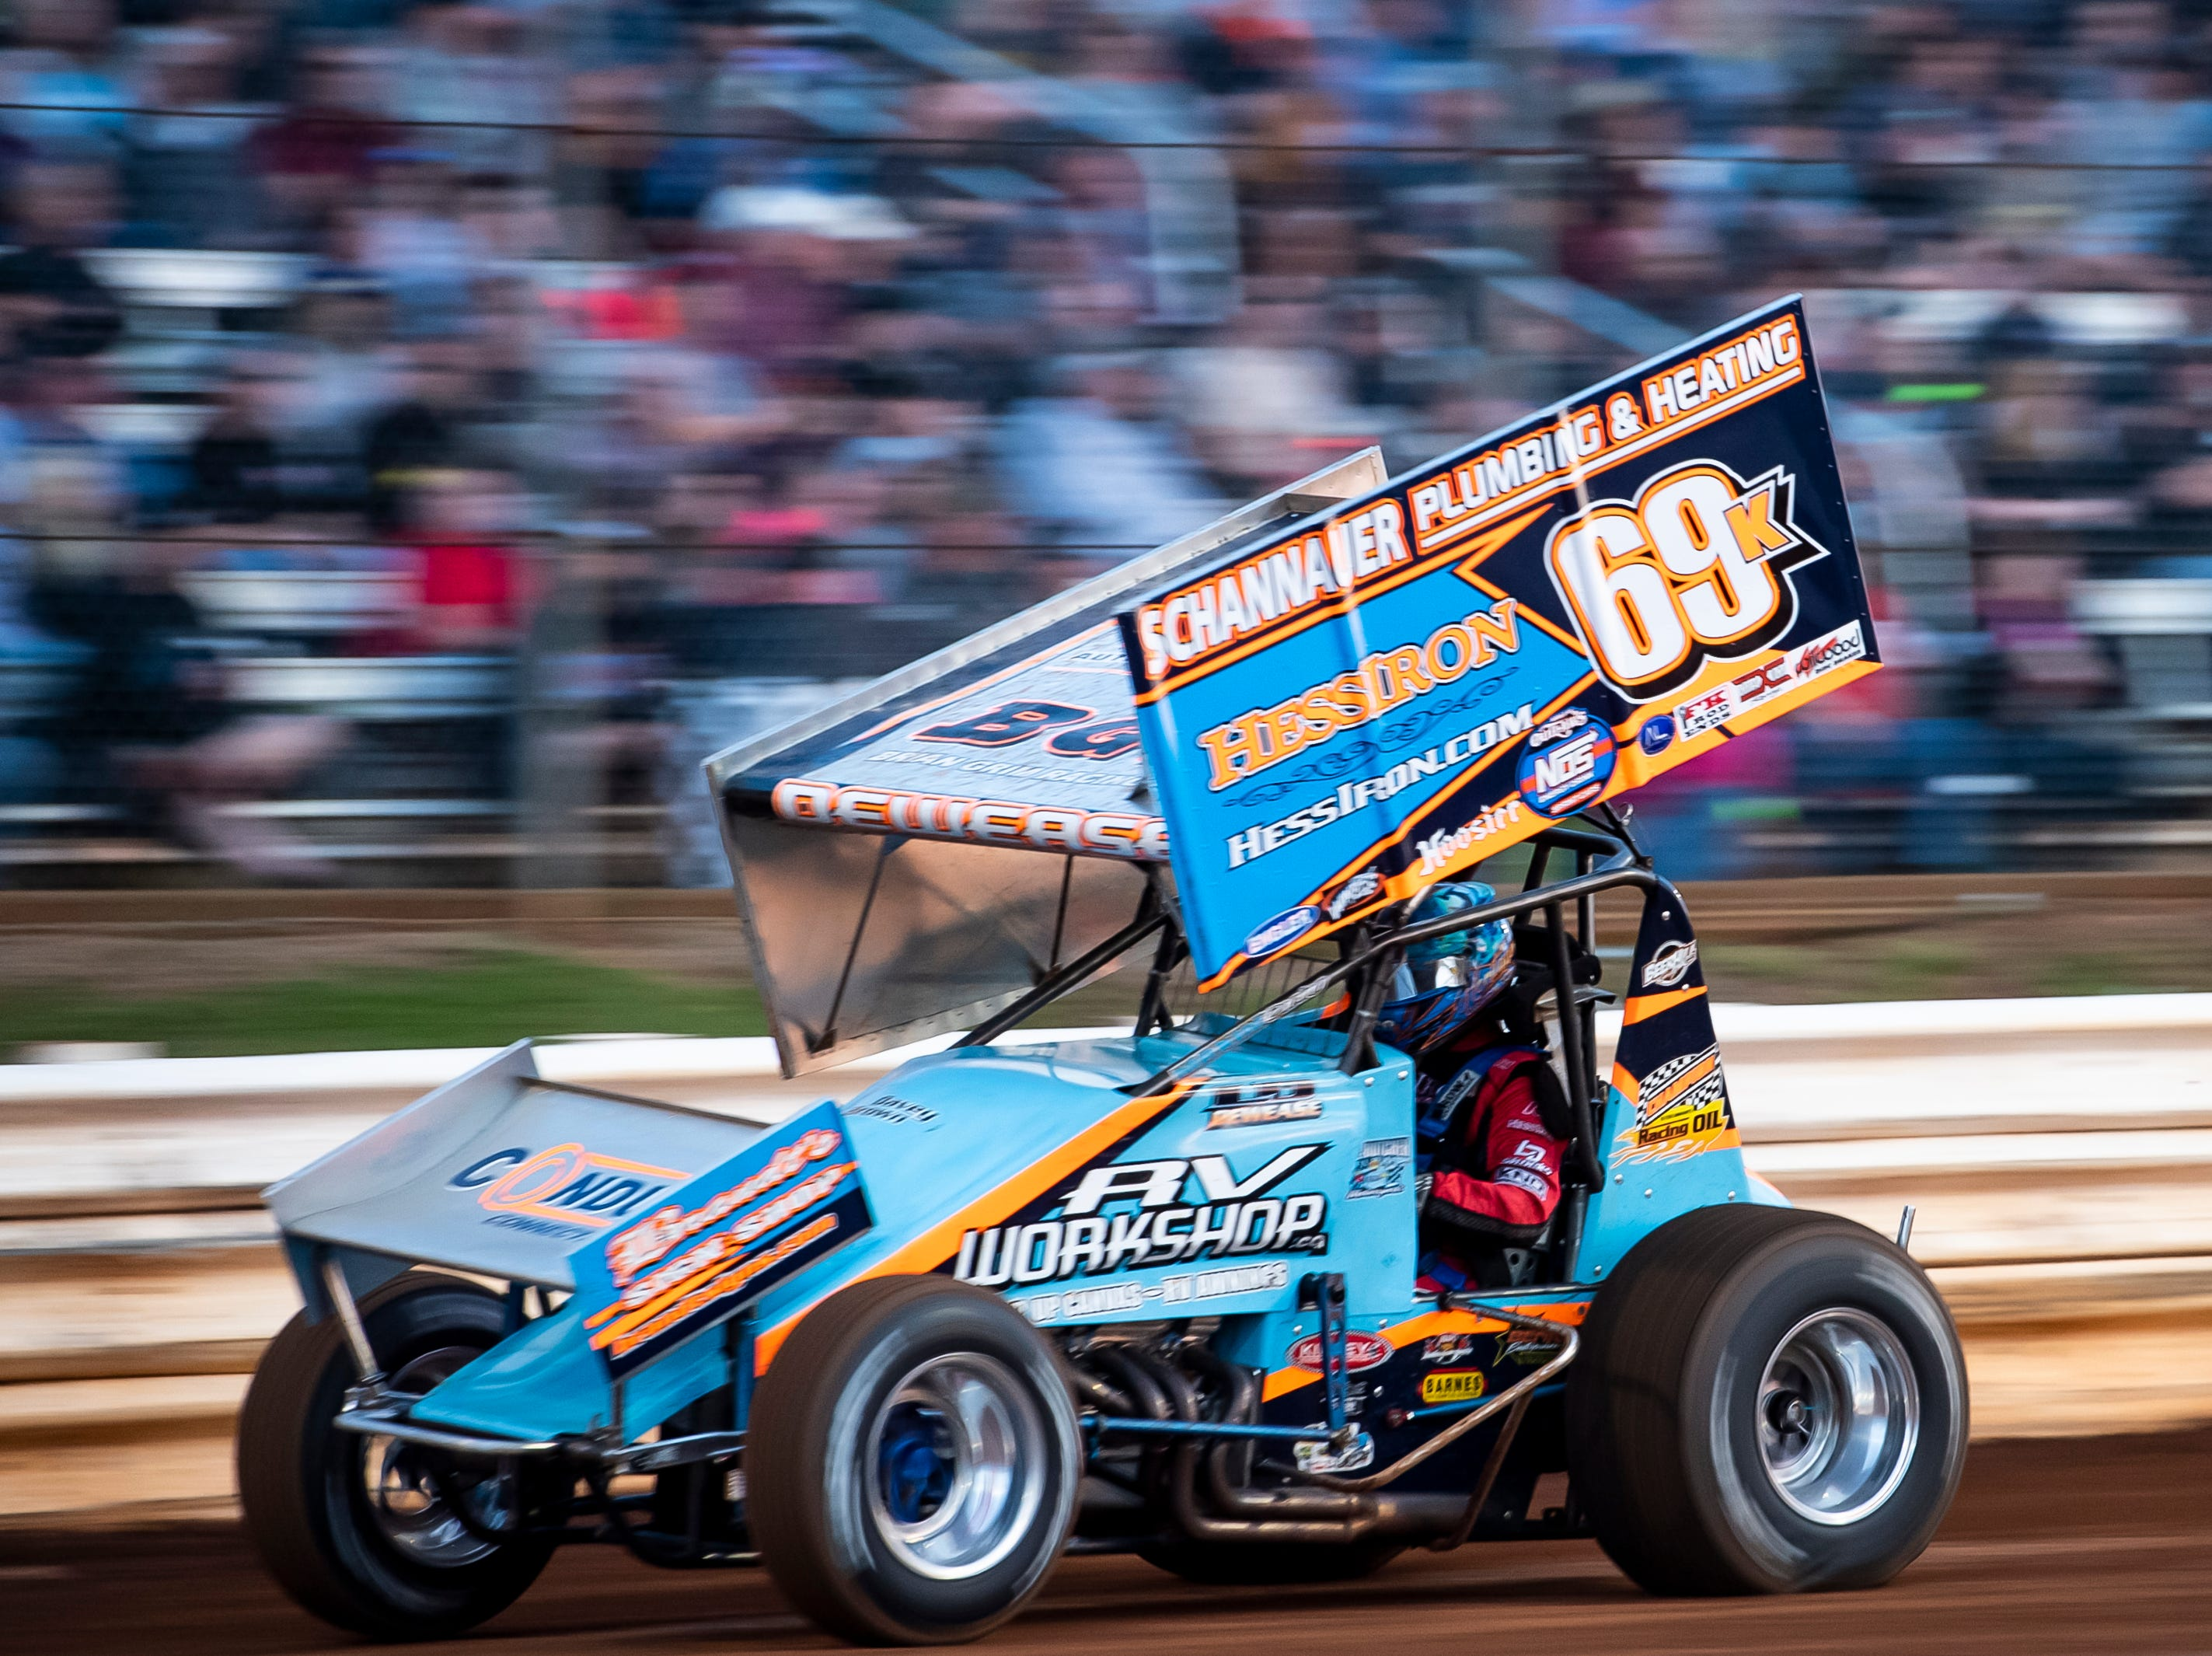 Lance Dewease races in the number 69K car during the World of Outlaws Gettysburg Clash at Lincoln Speedway in Abbottstown on Wednesday, May 15, 2019.